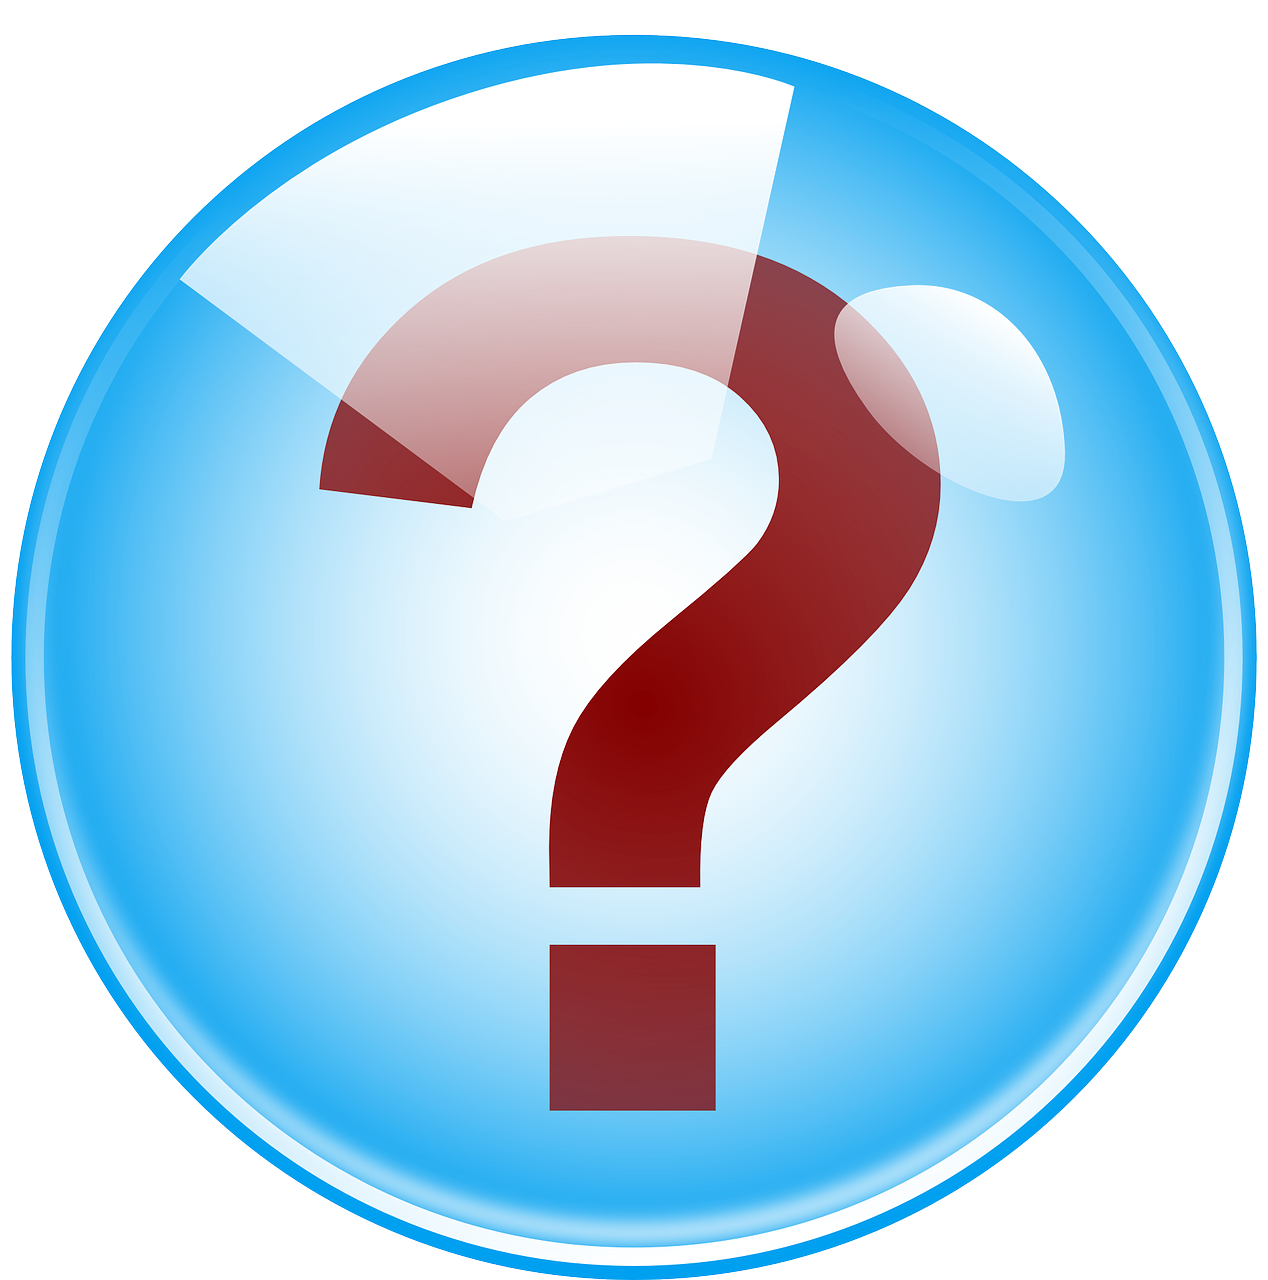 Question mark in a blue bubble. Repeating icon for the frequently asked questions in the Daughters of Zeus series a young adult greek mythology retelling by Kaitlin Bevis